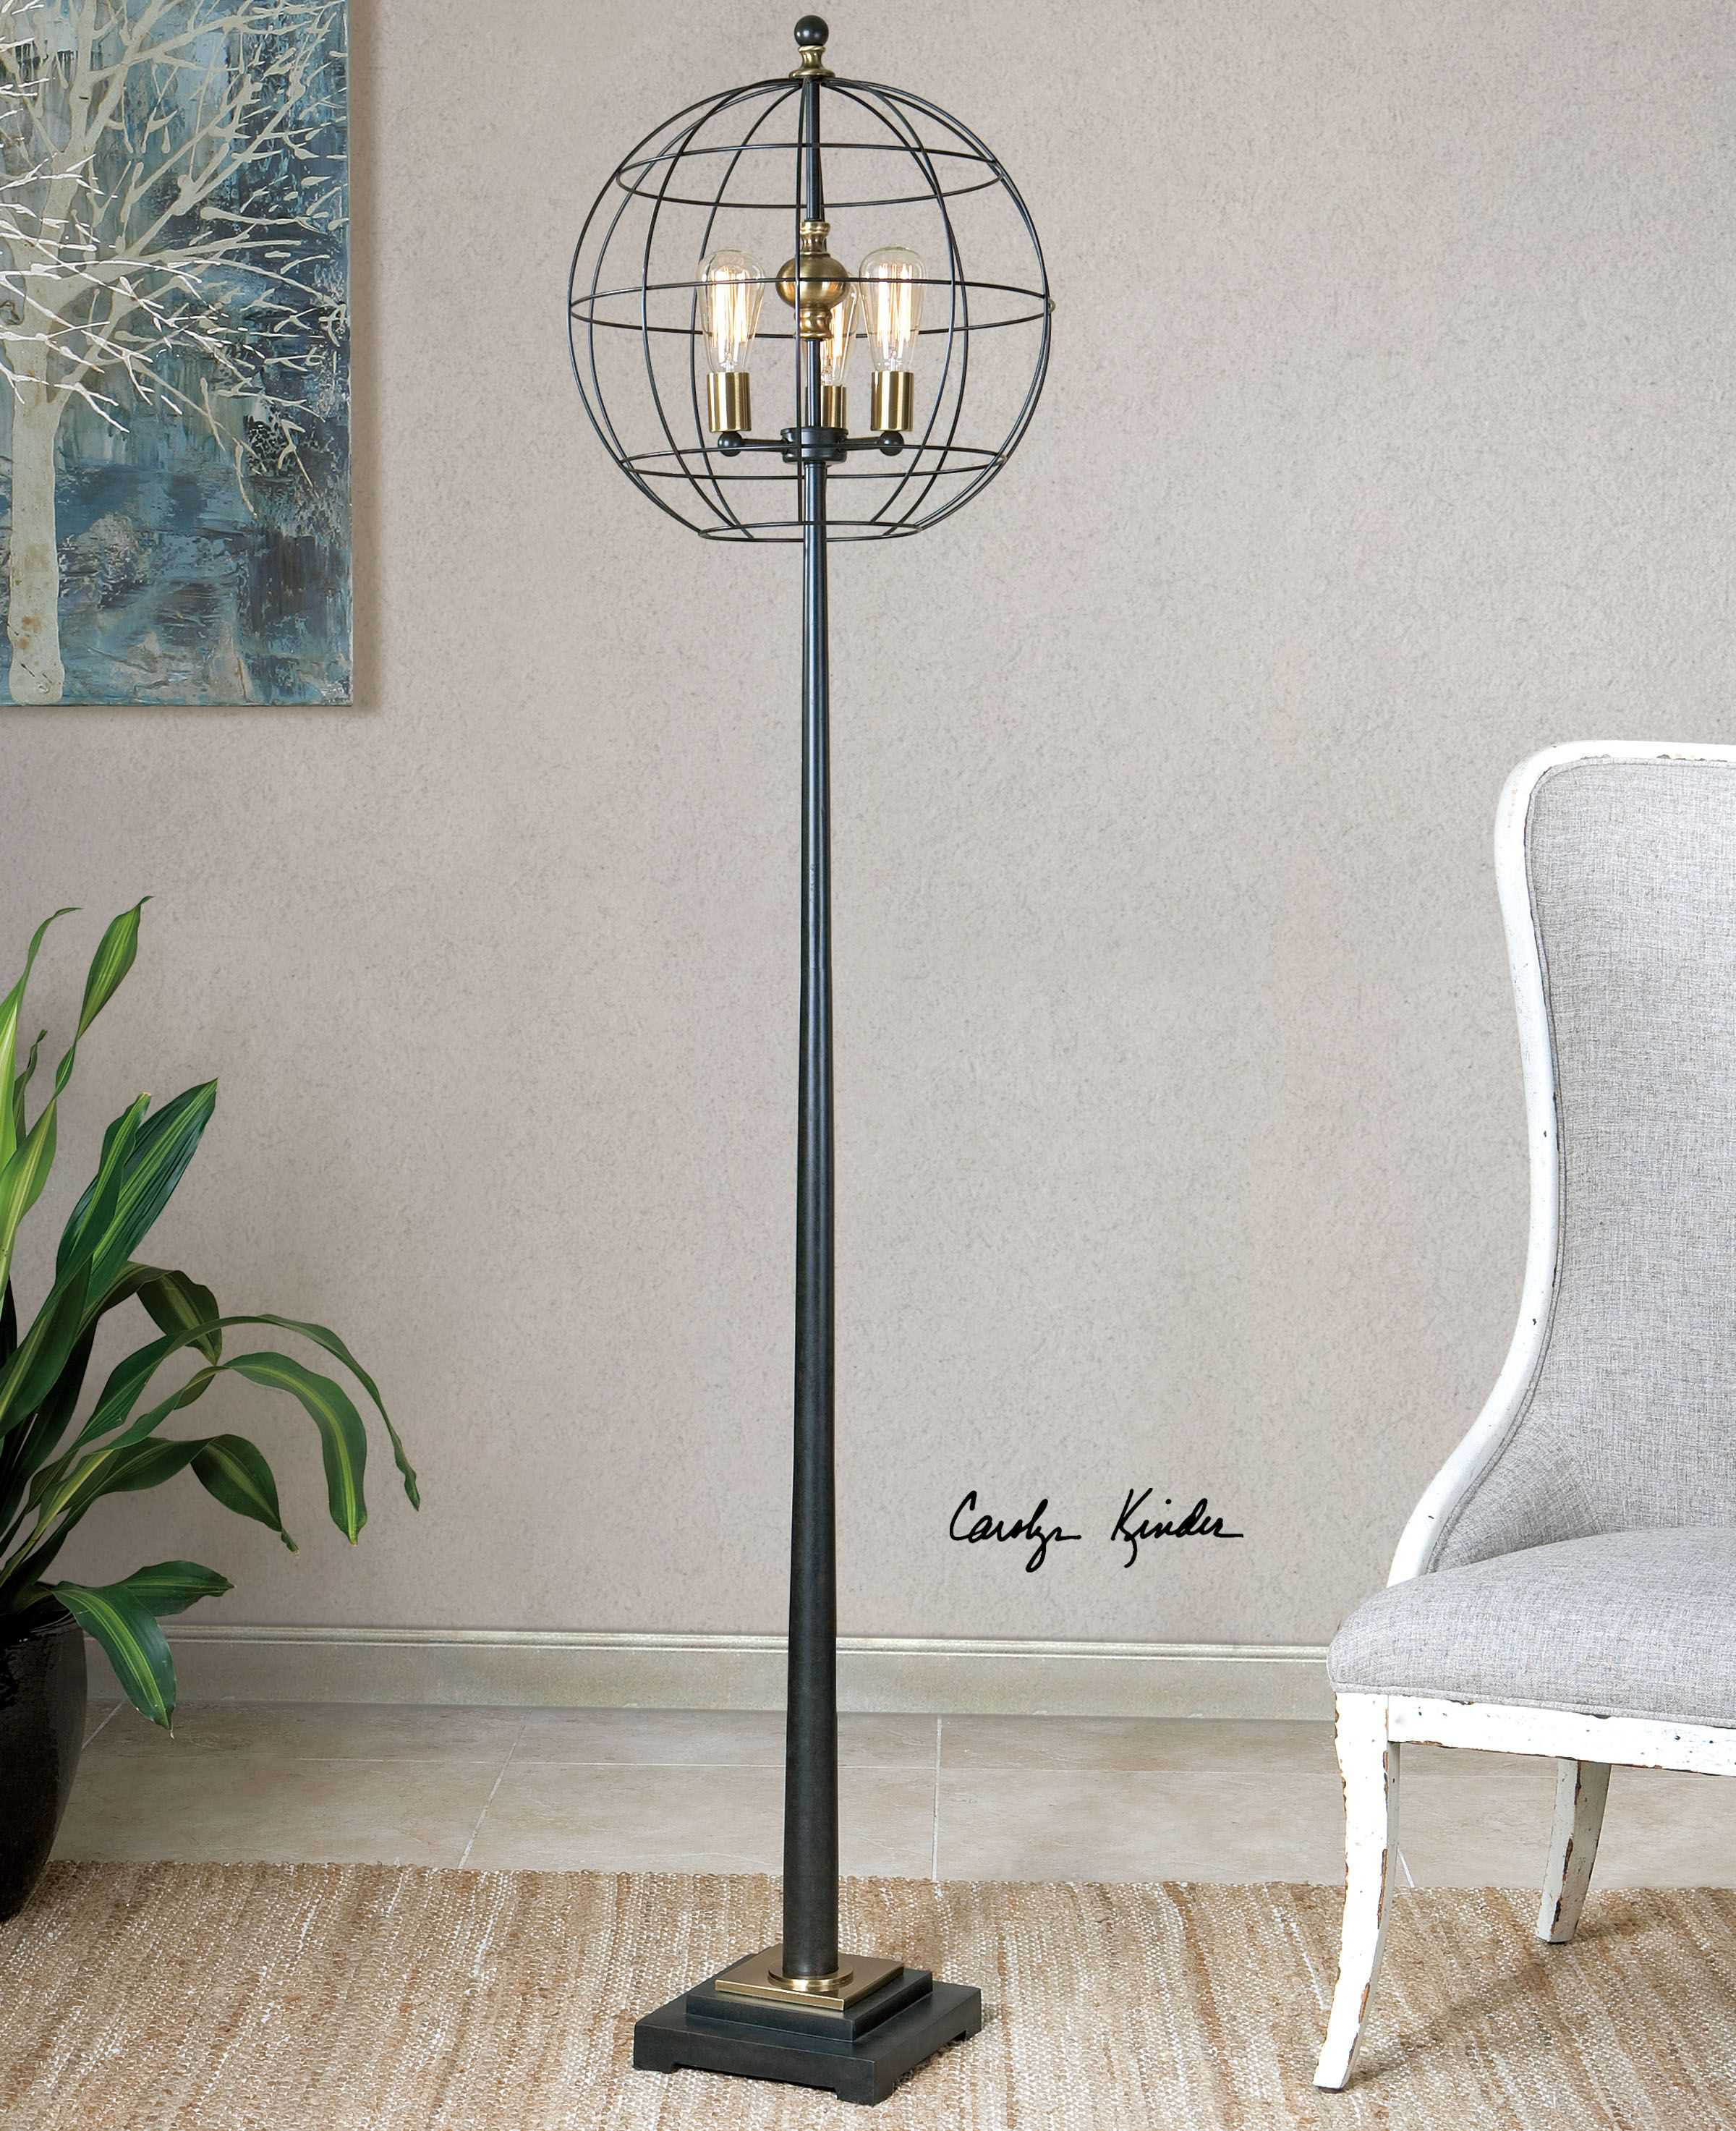 chelsea house vase of uttermost palla aged black three light round cage floor lamp ut286281 with regard to uttermost palla aged black three light round cage floor lamp